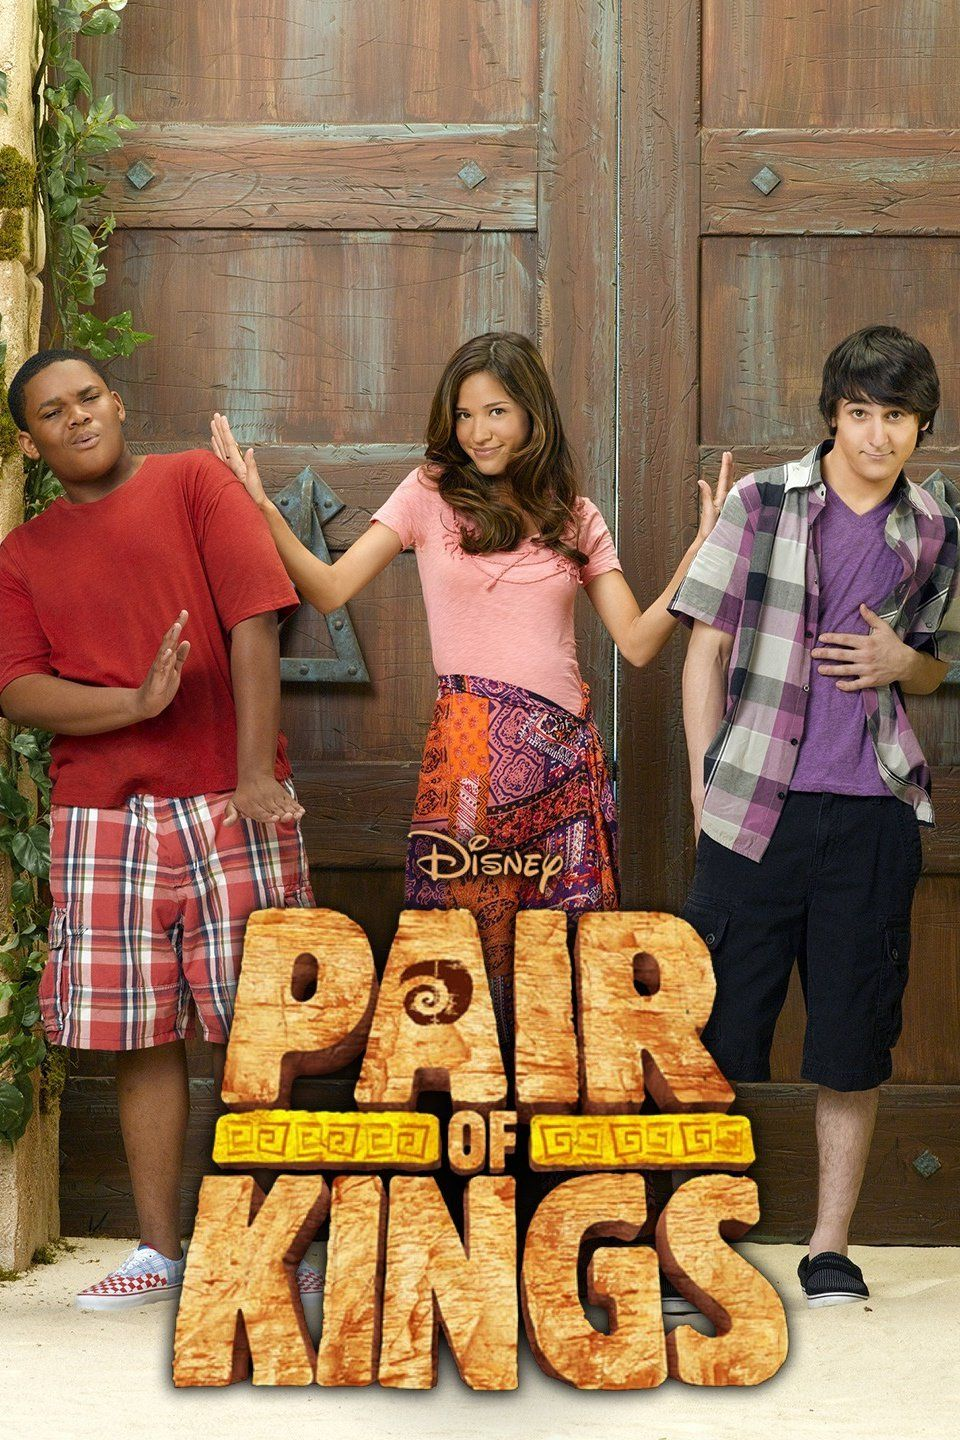 Pair of Kings (With images) Disney xd, Disney s, Childhood